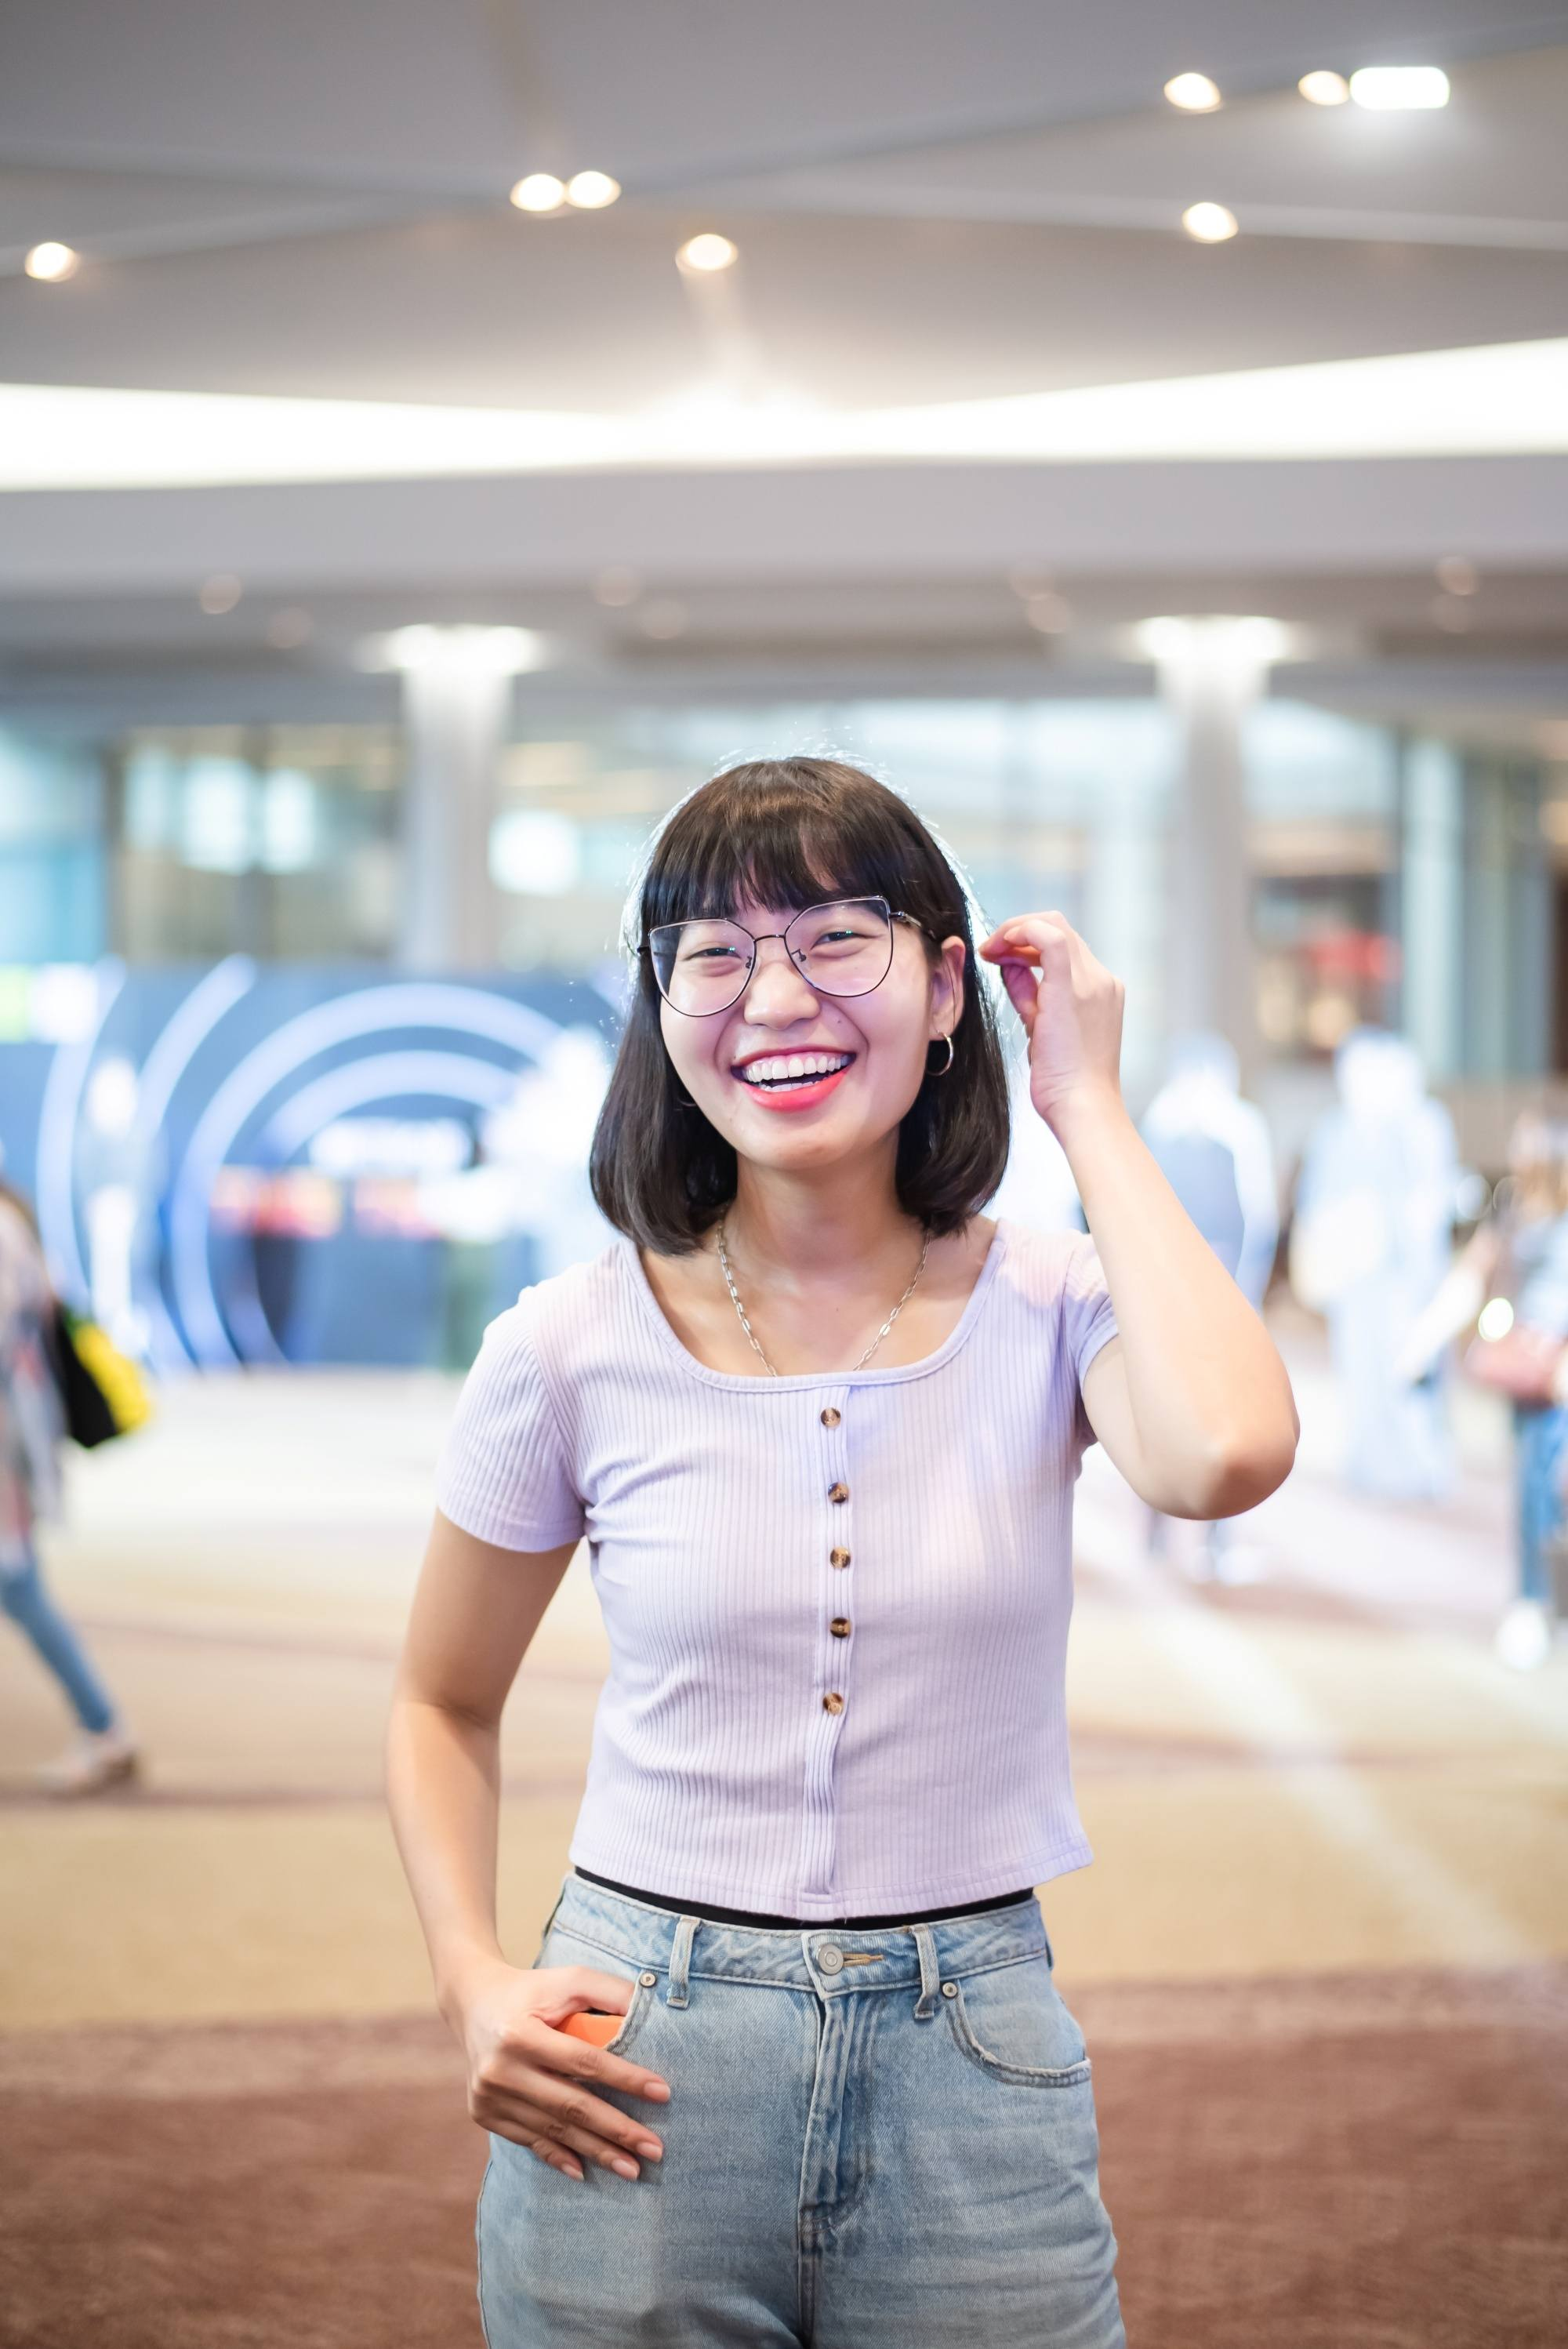 Bangs With Glasses 12 Hairstyles To Rock This Look All Things Hair Ph